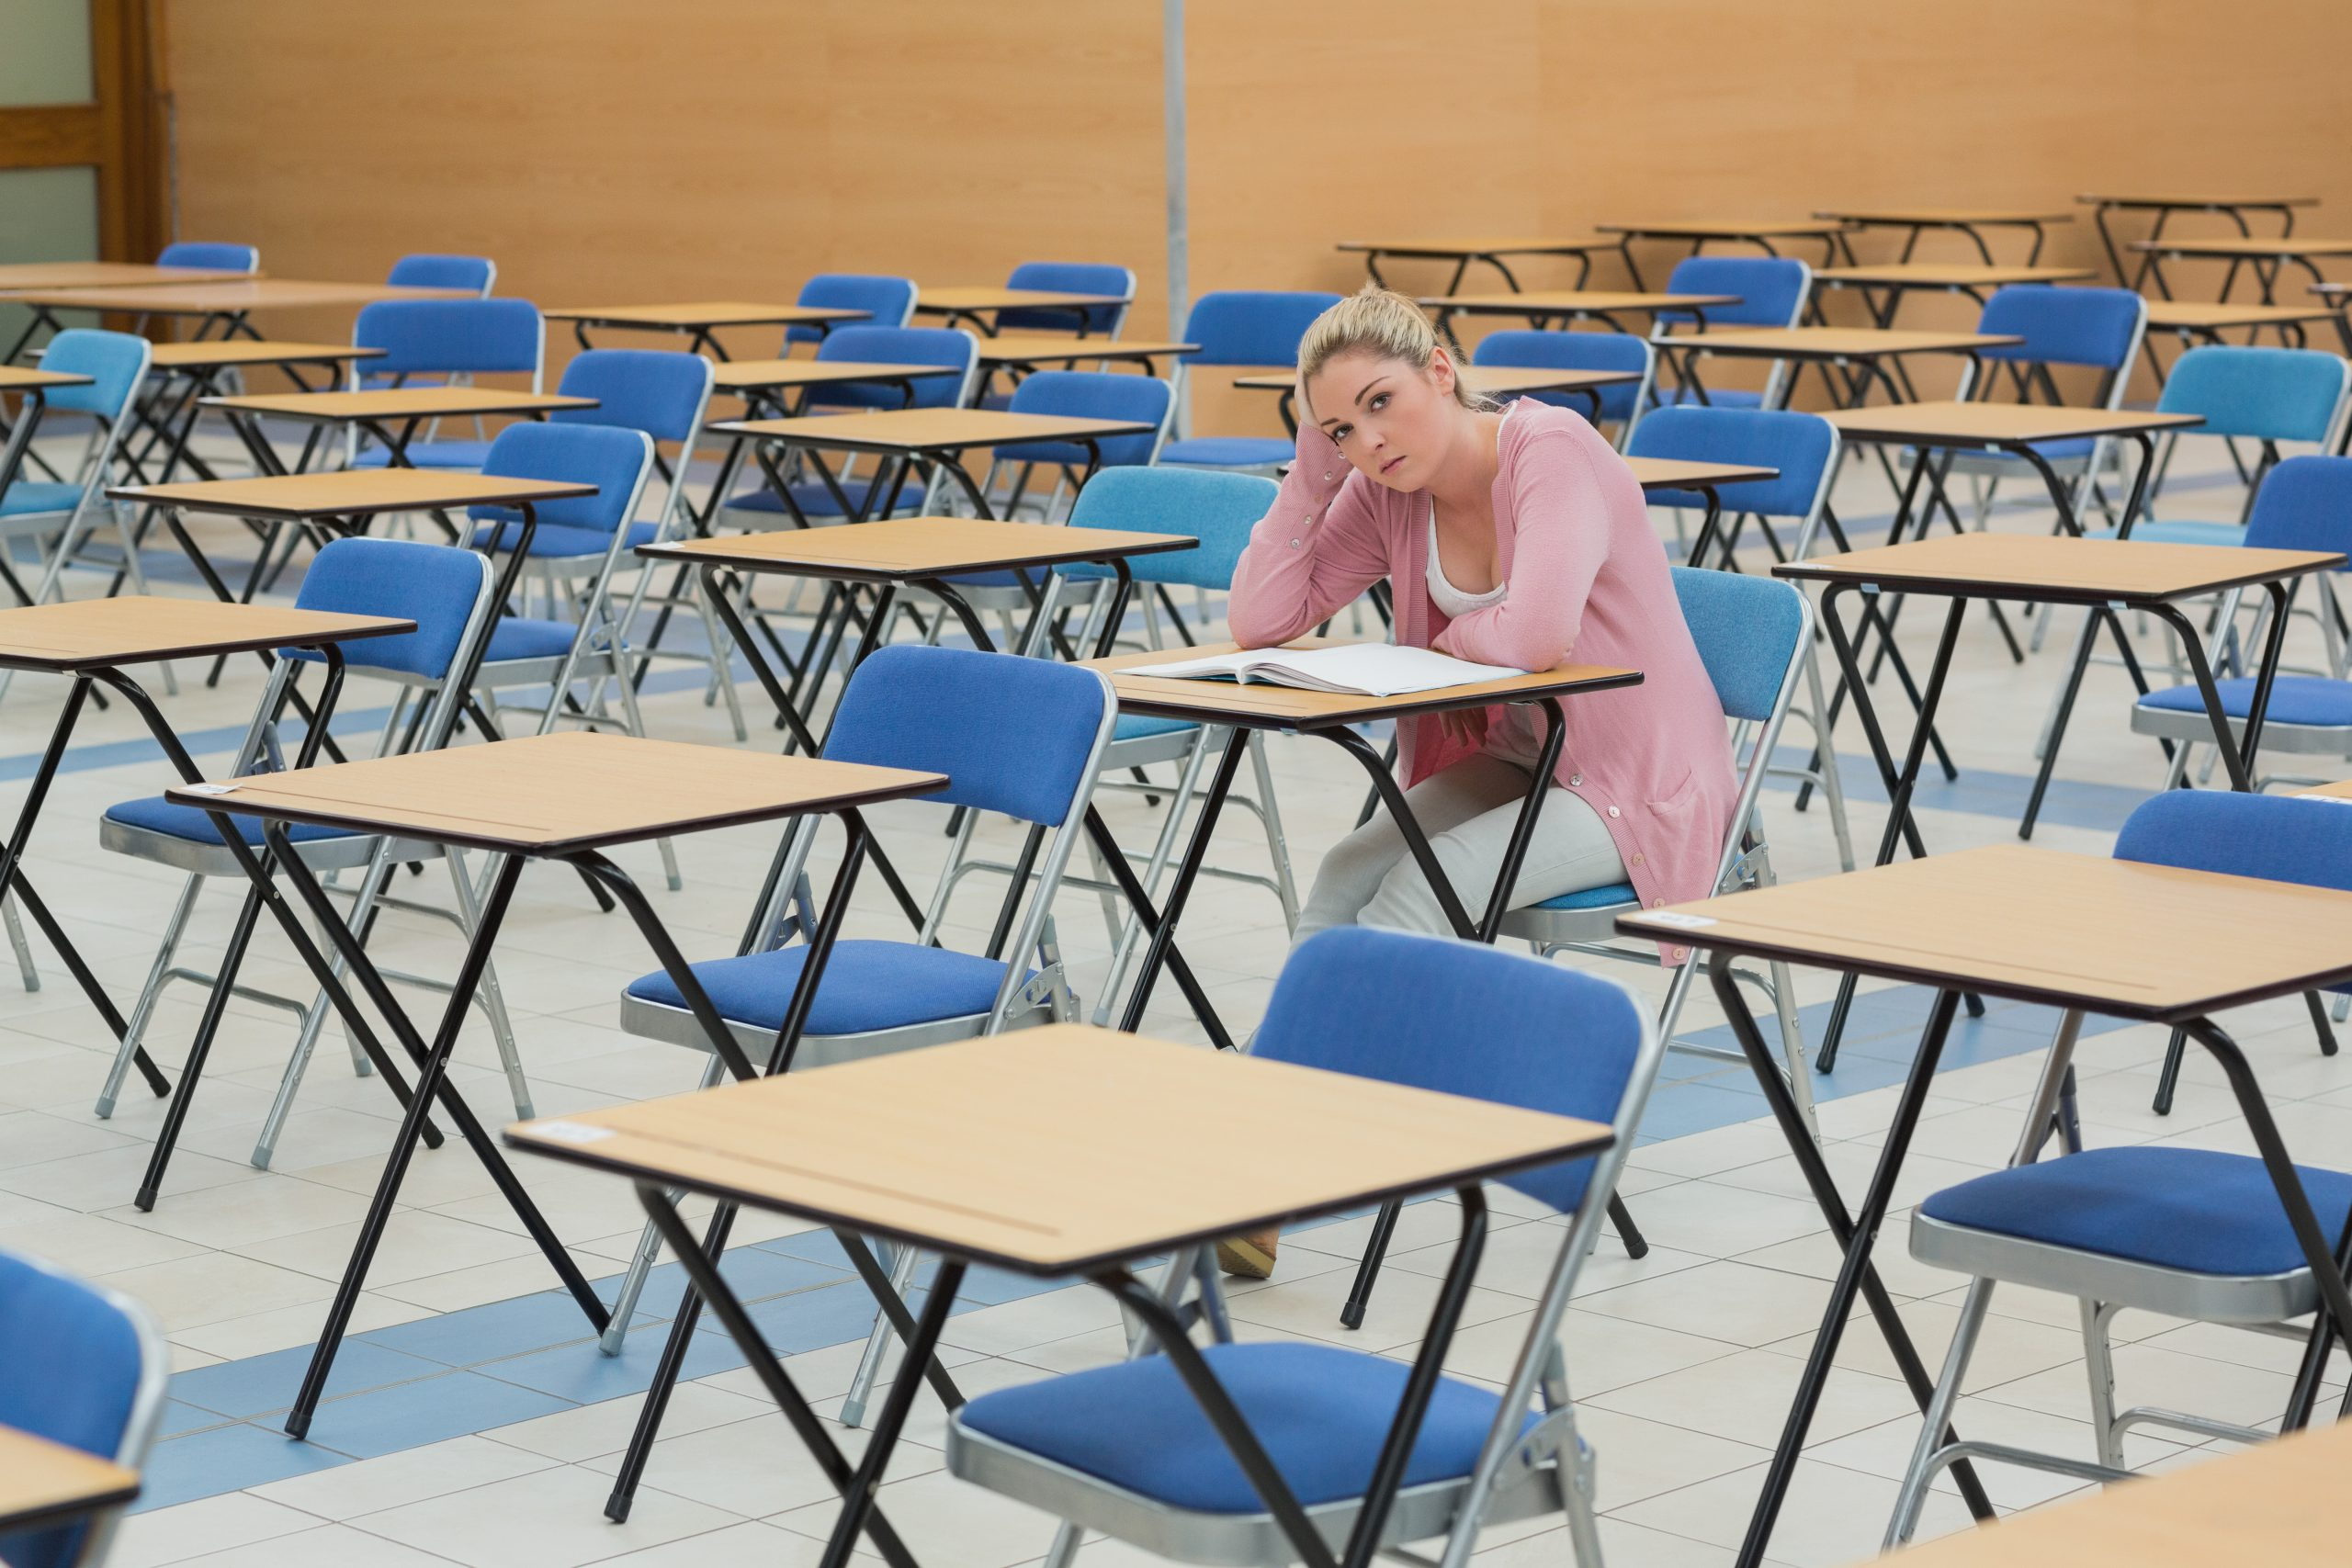 girl sitting alone in an exam hall